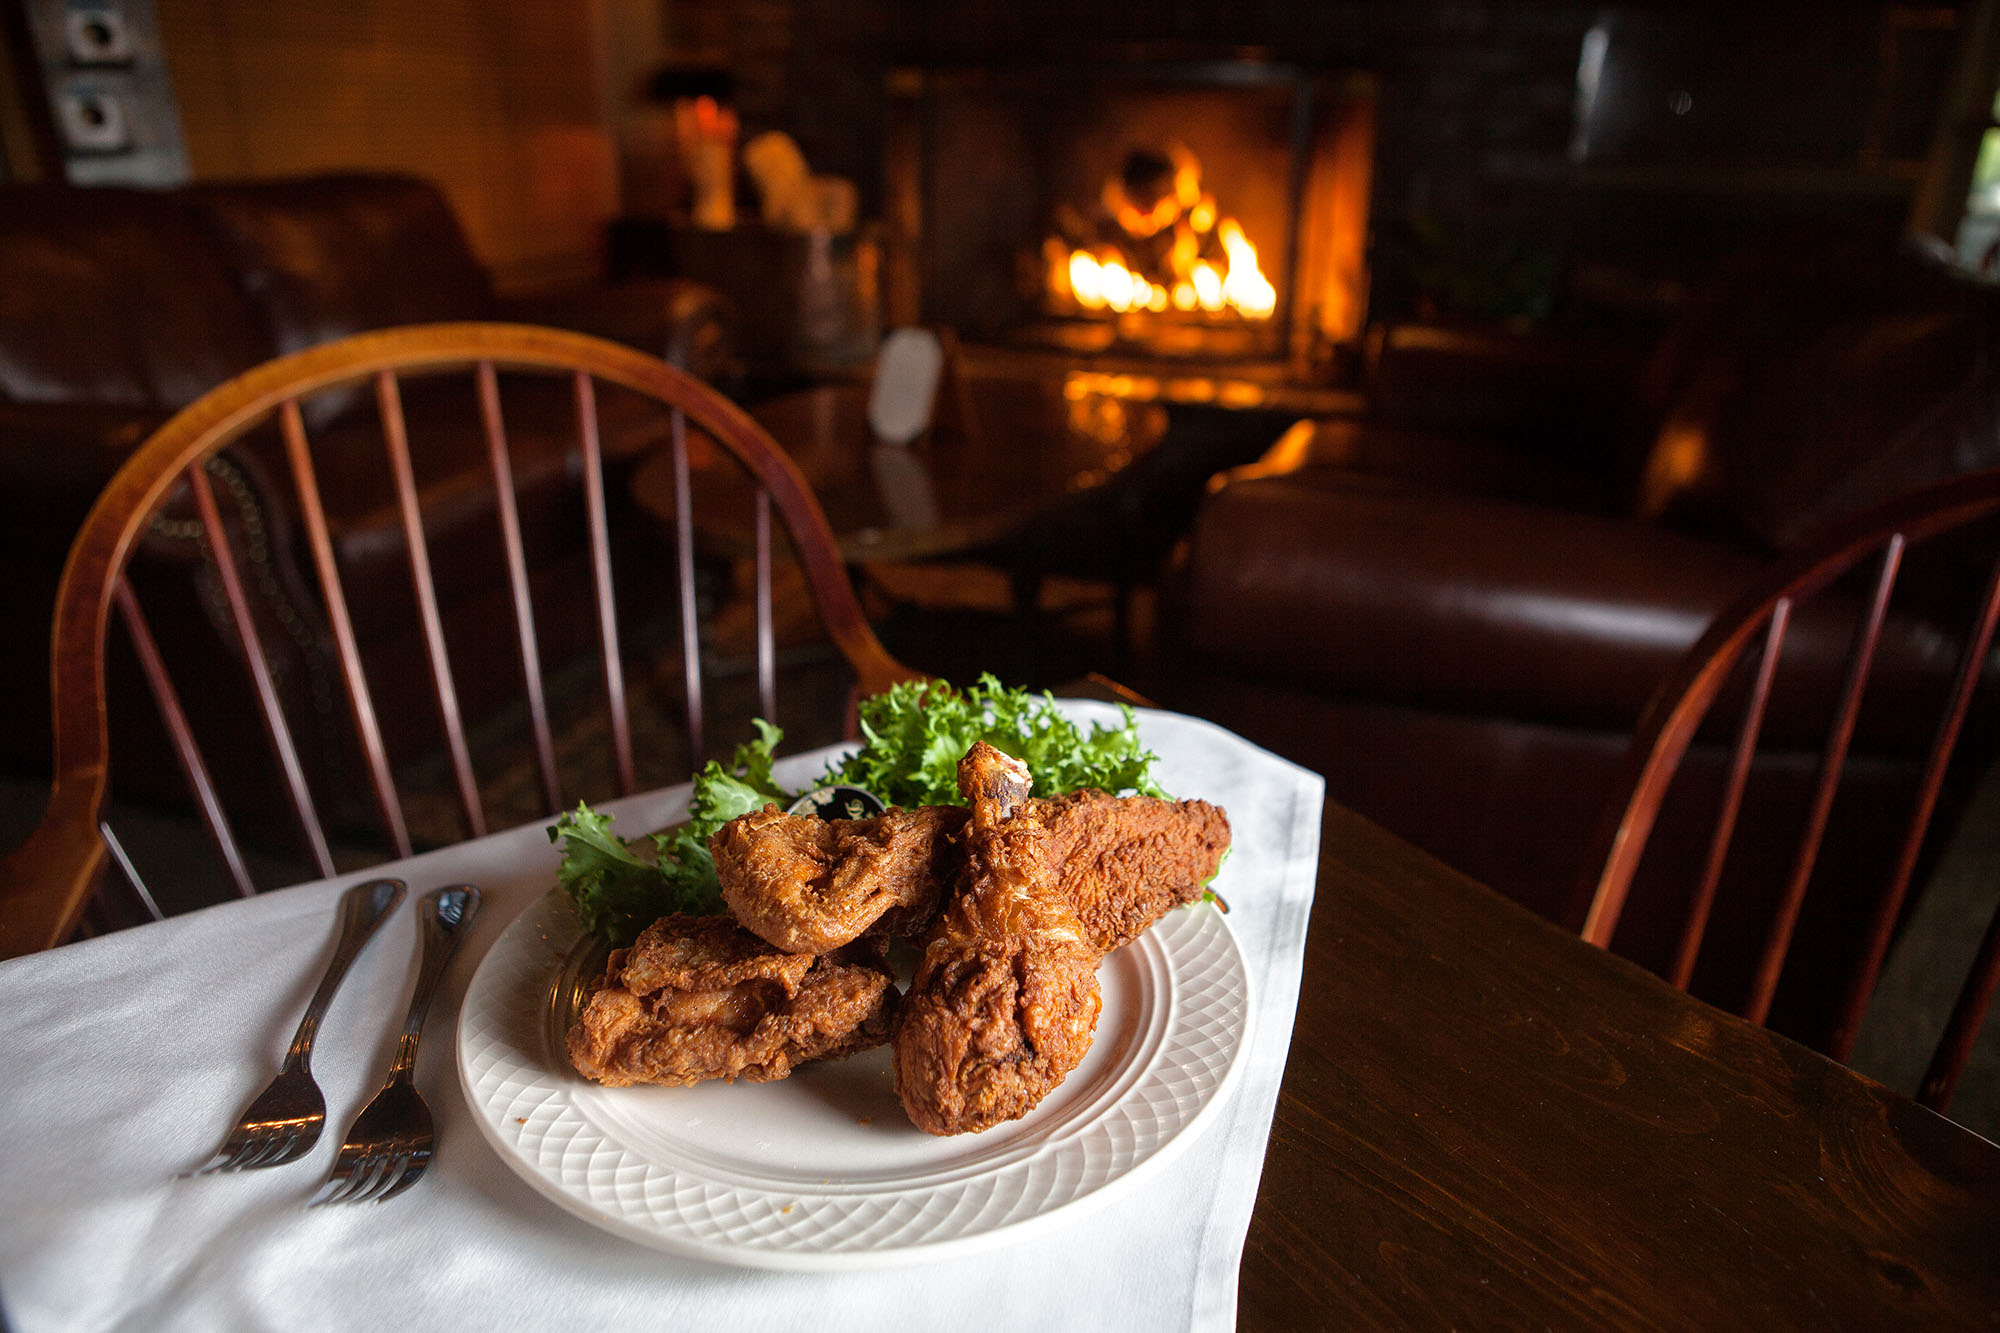 Merrick Inn - Fried Chicken